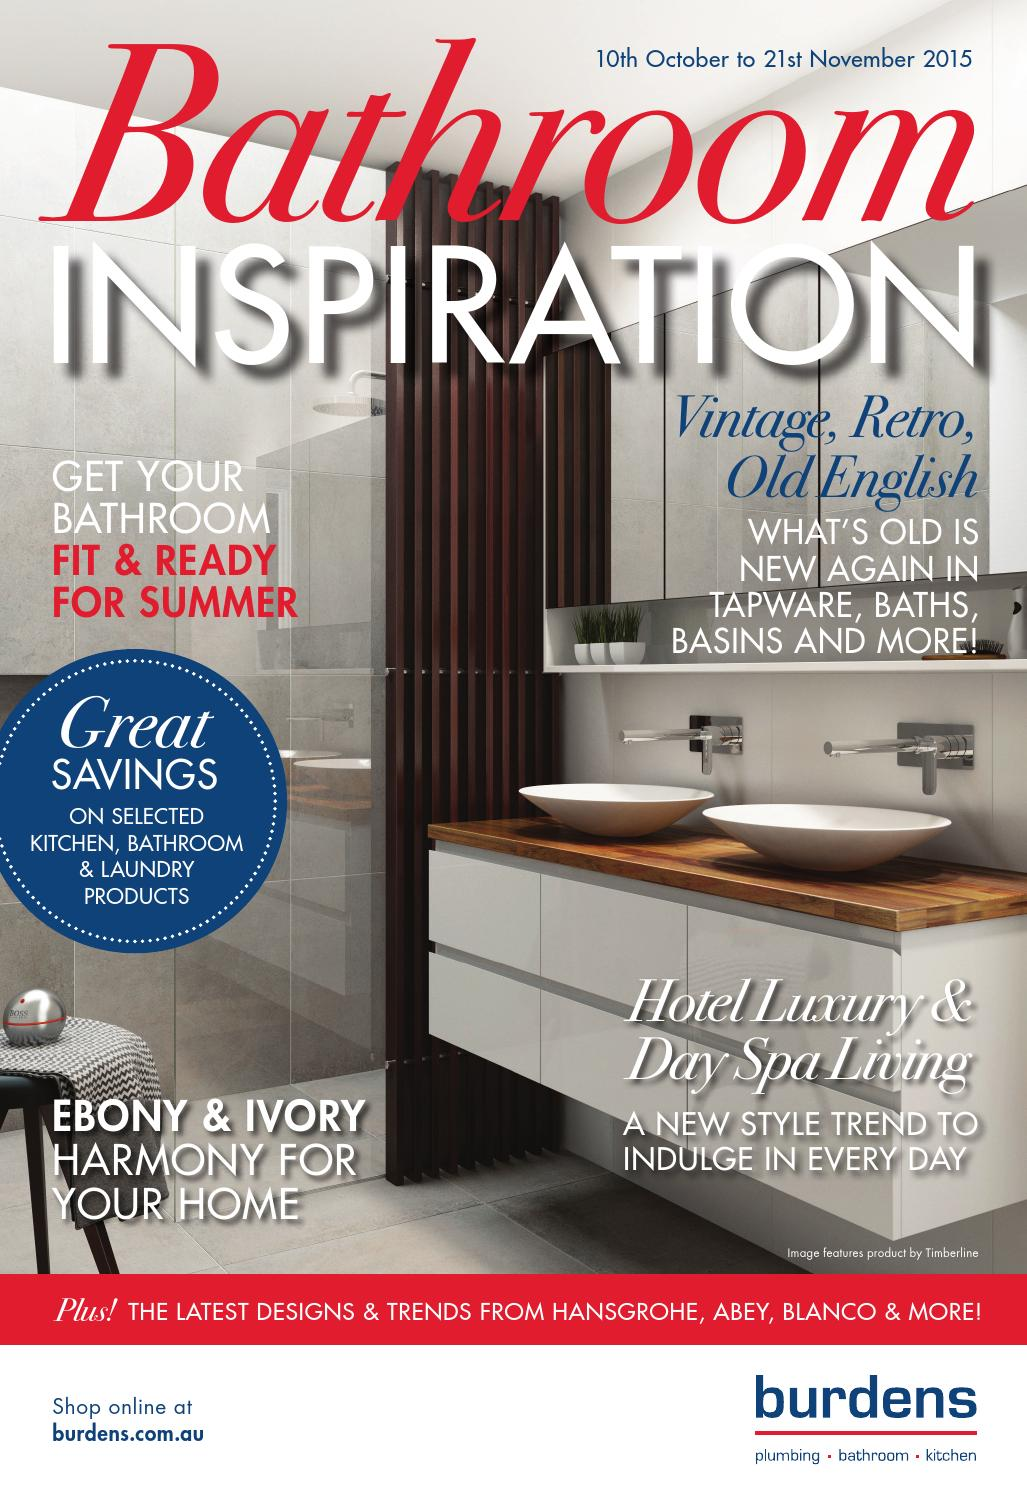 Burdens Bathrooms Bathroom Inspiration Catalogue October 2017 By Lachie Dunn Issuu